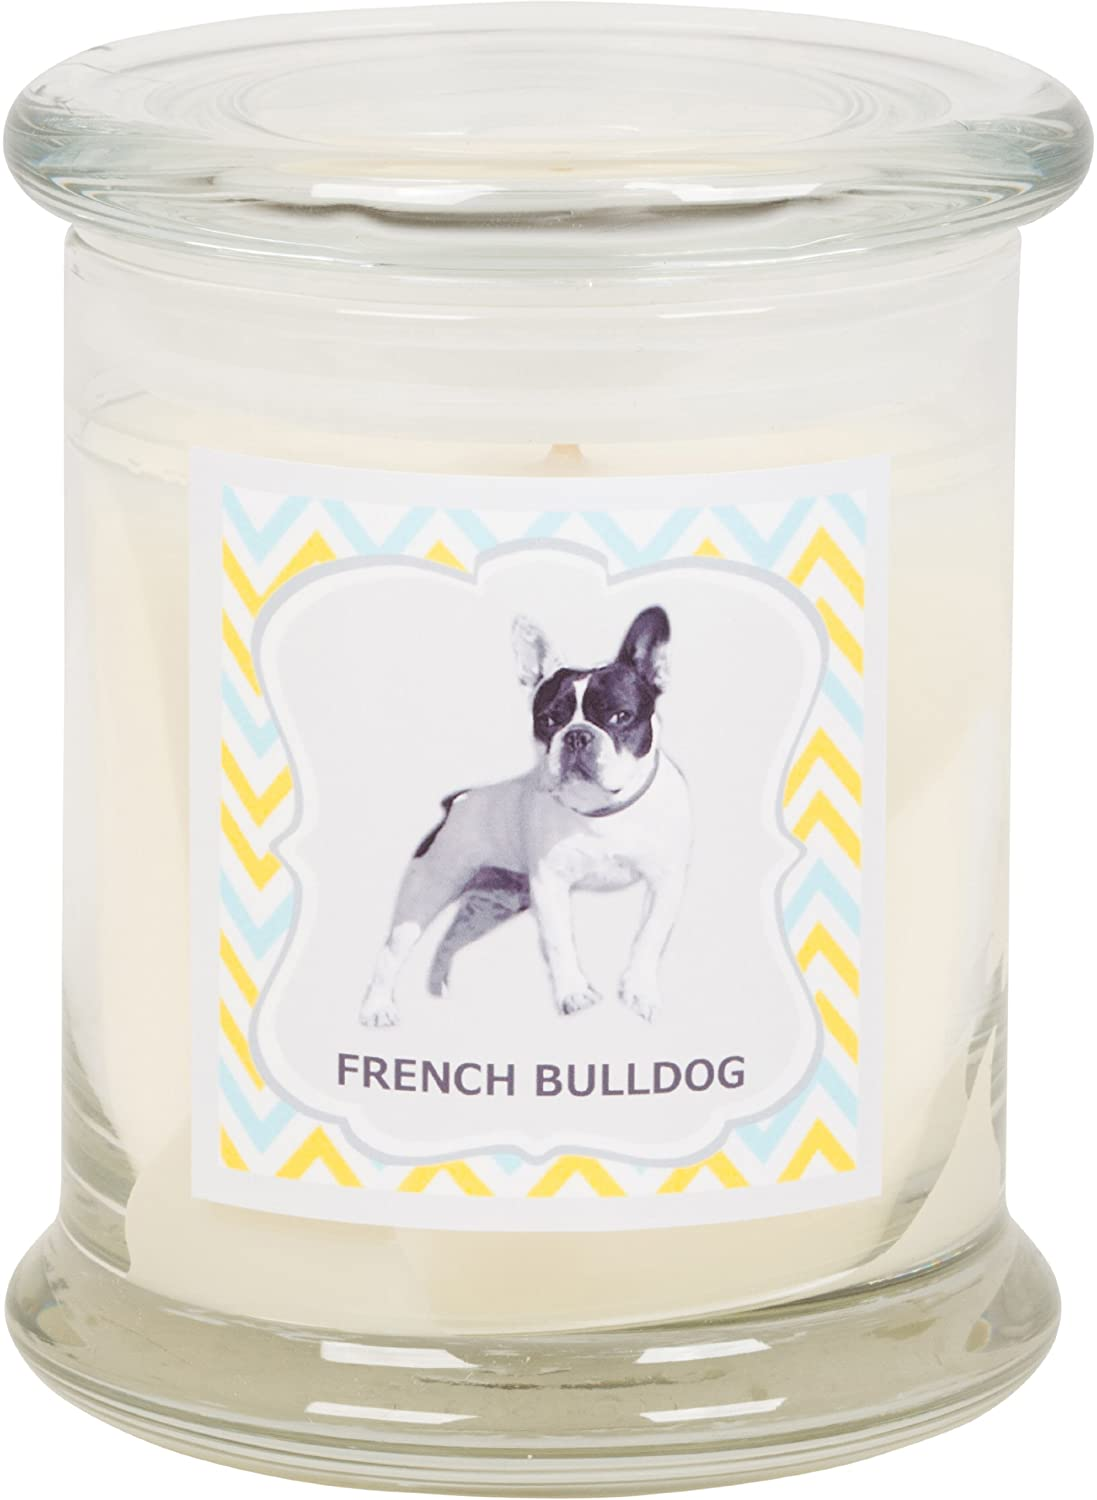 Aroma Paws Breed Candle Jar 12-Ounce French Bulldog